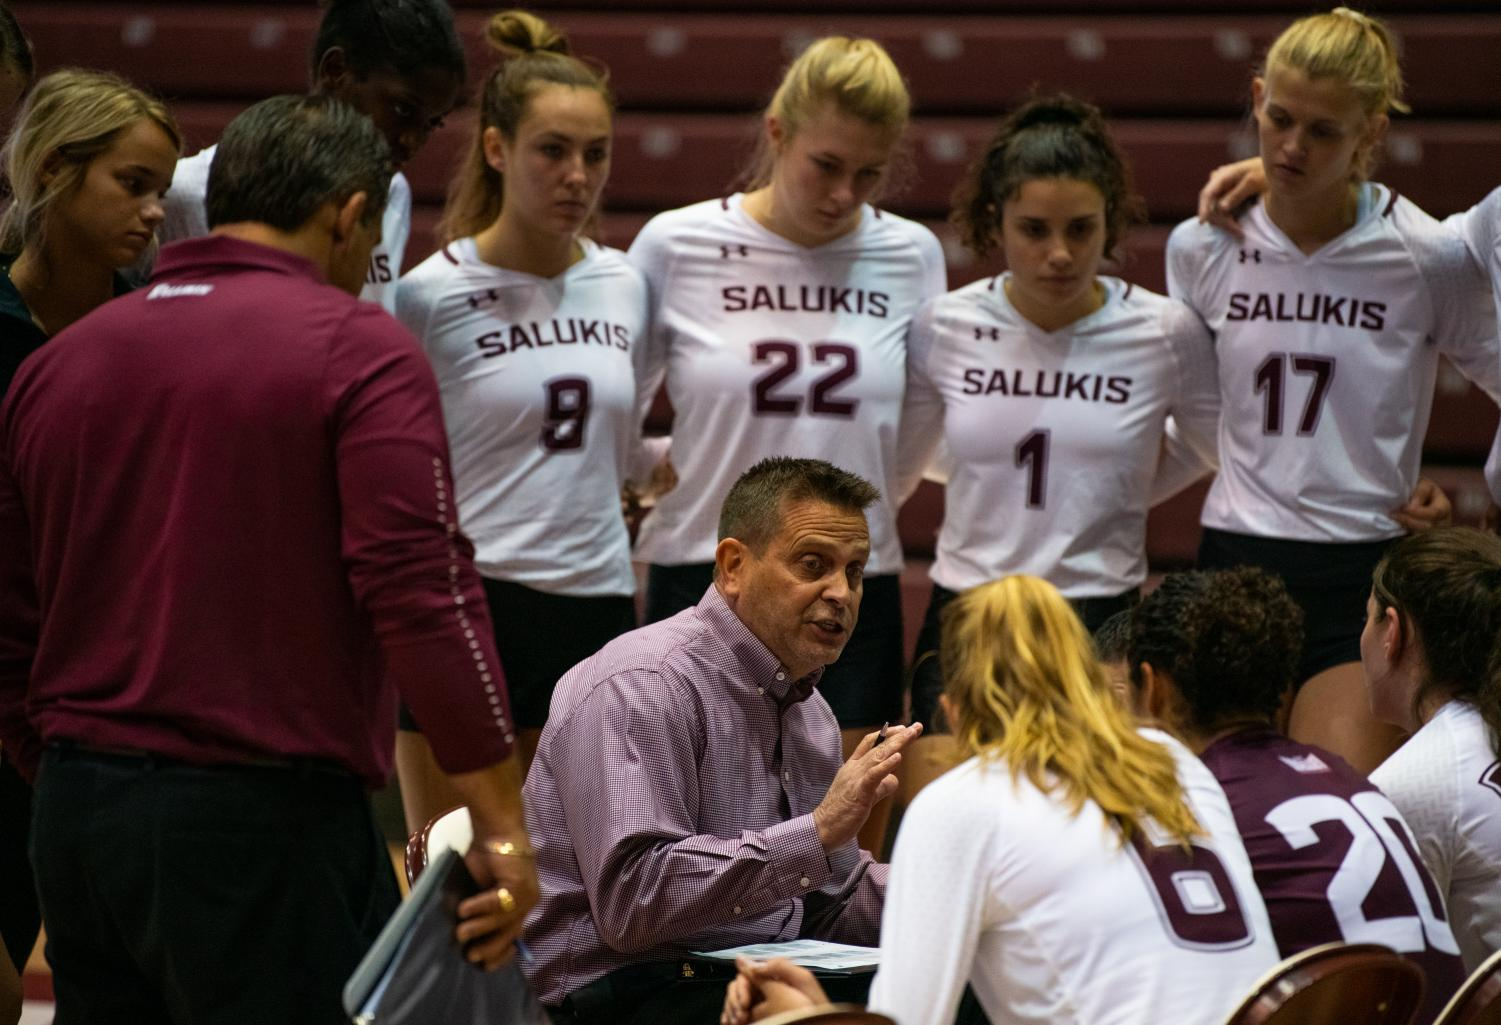 Head+Coach+Ed+Allen+speaks+to+the+team+during+a+time+out+on+Saturday%2C+Sept.+7%2C+2019+during+the+Salukis%E2%80%99+3-1+win+against+the+Southeastern+Louisiana+University+Lions+at+the+Banterra+Center.+